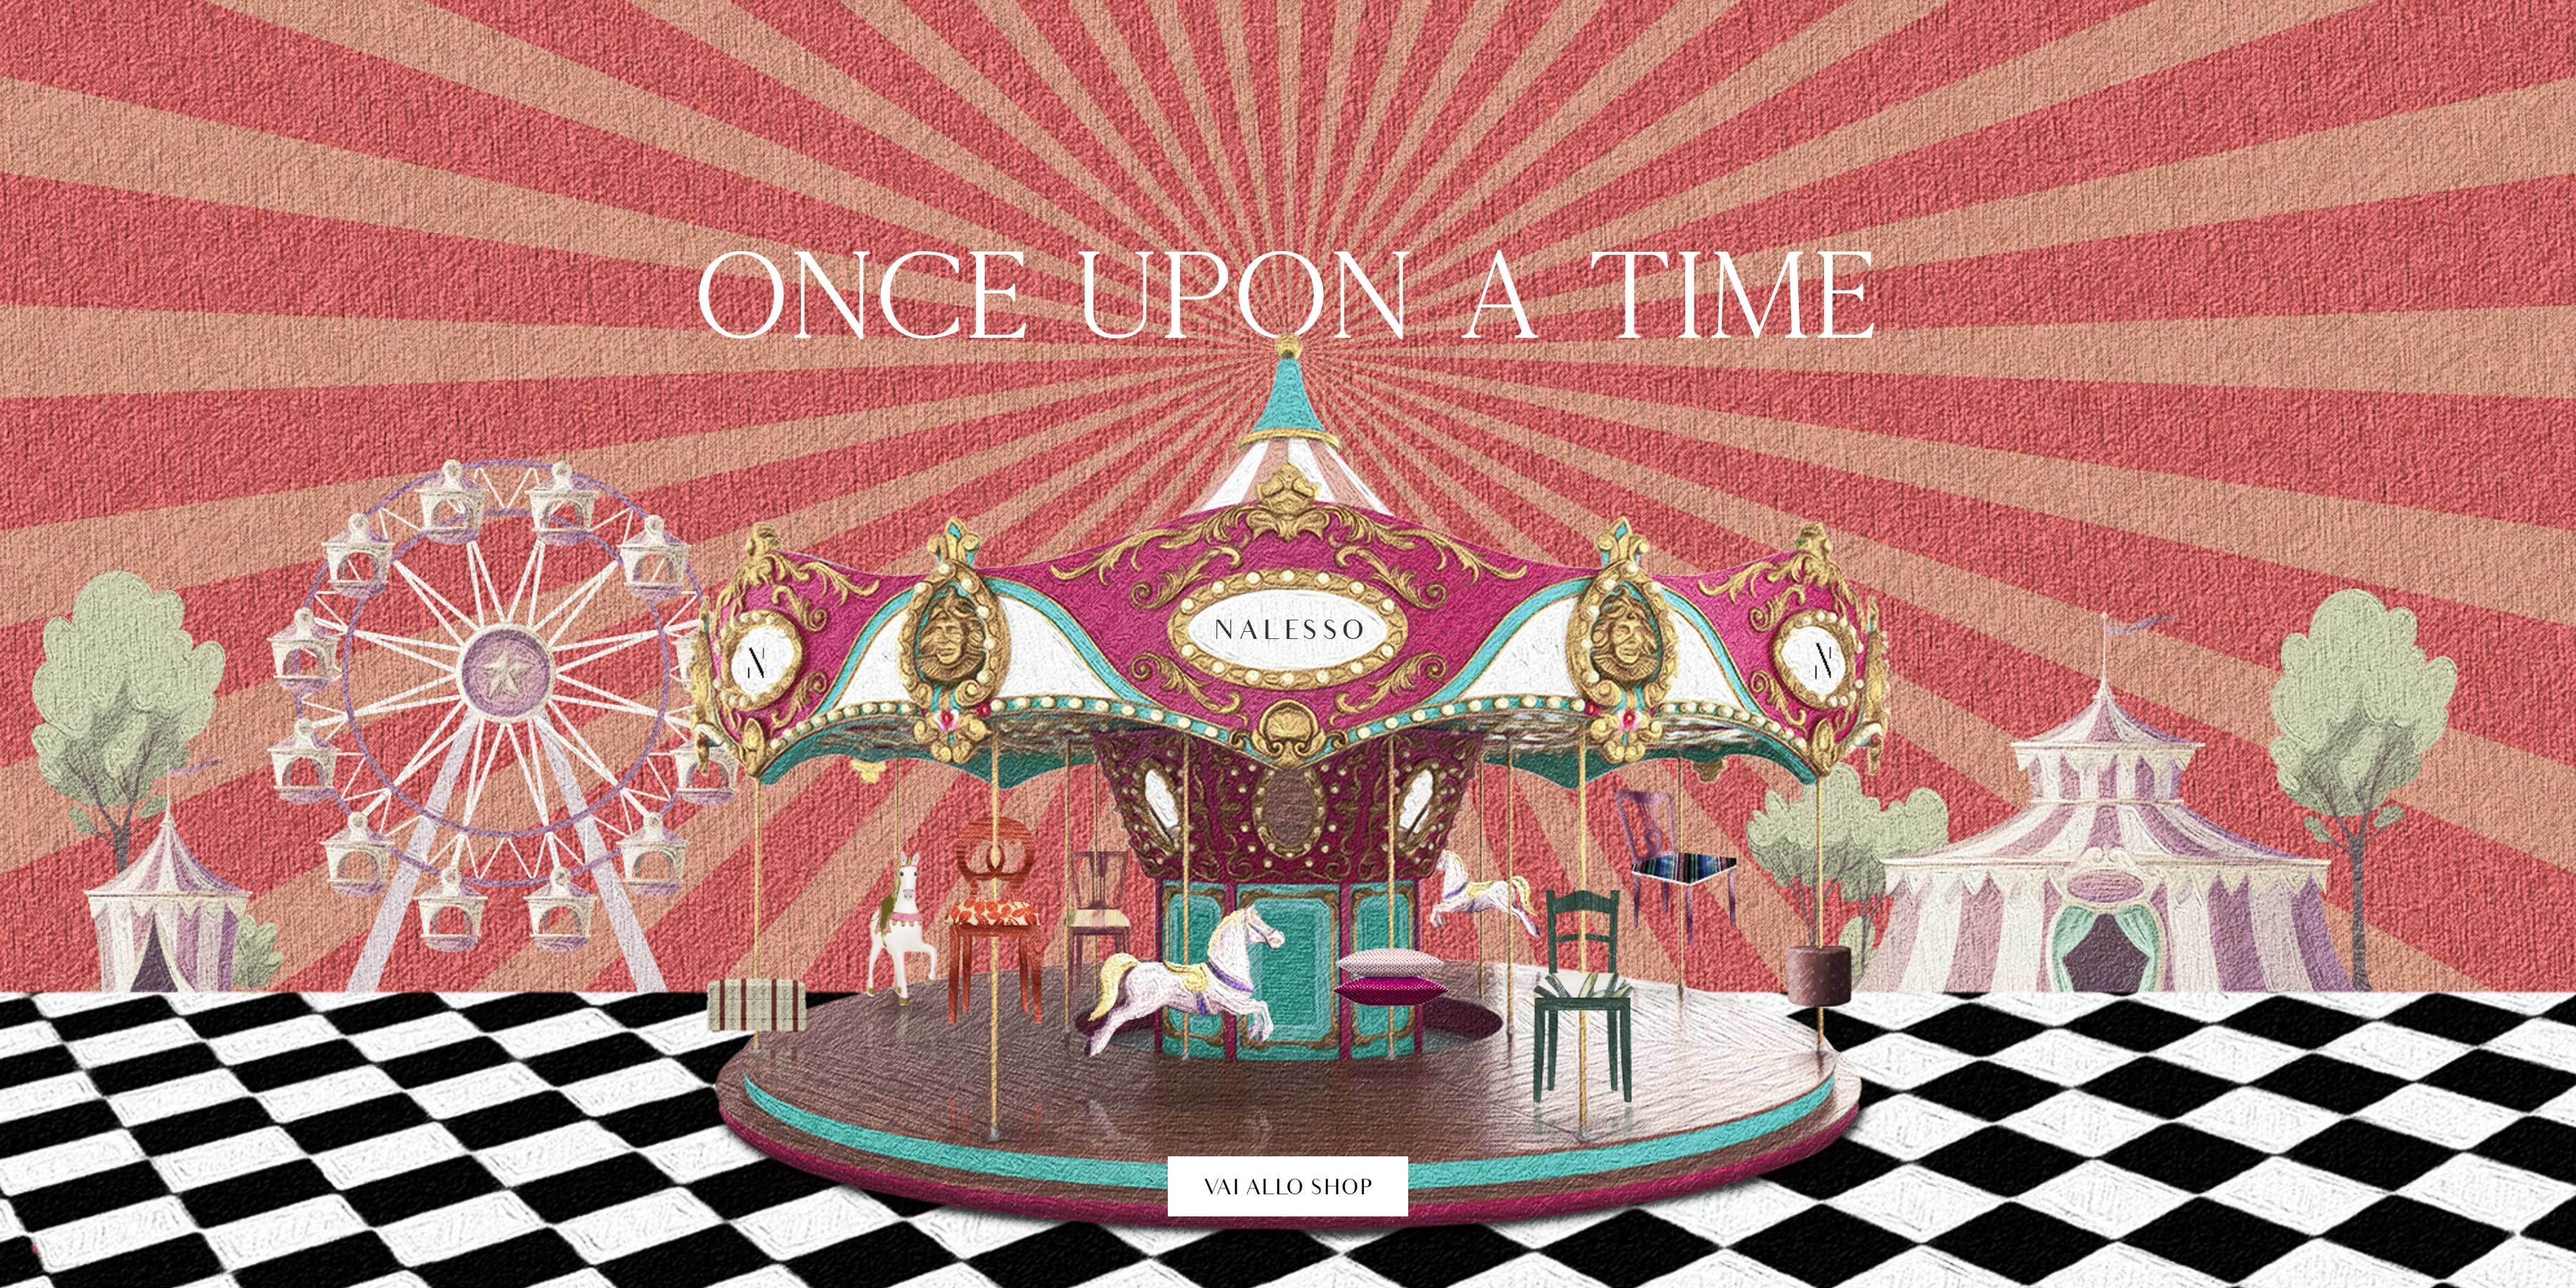 Once Upon a Time - Digital Shop